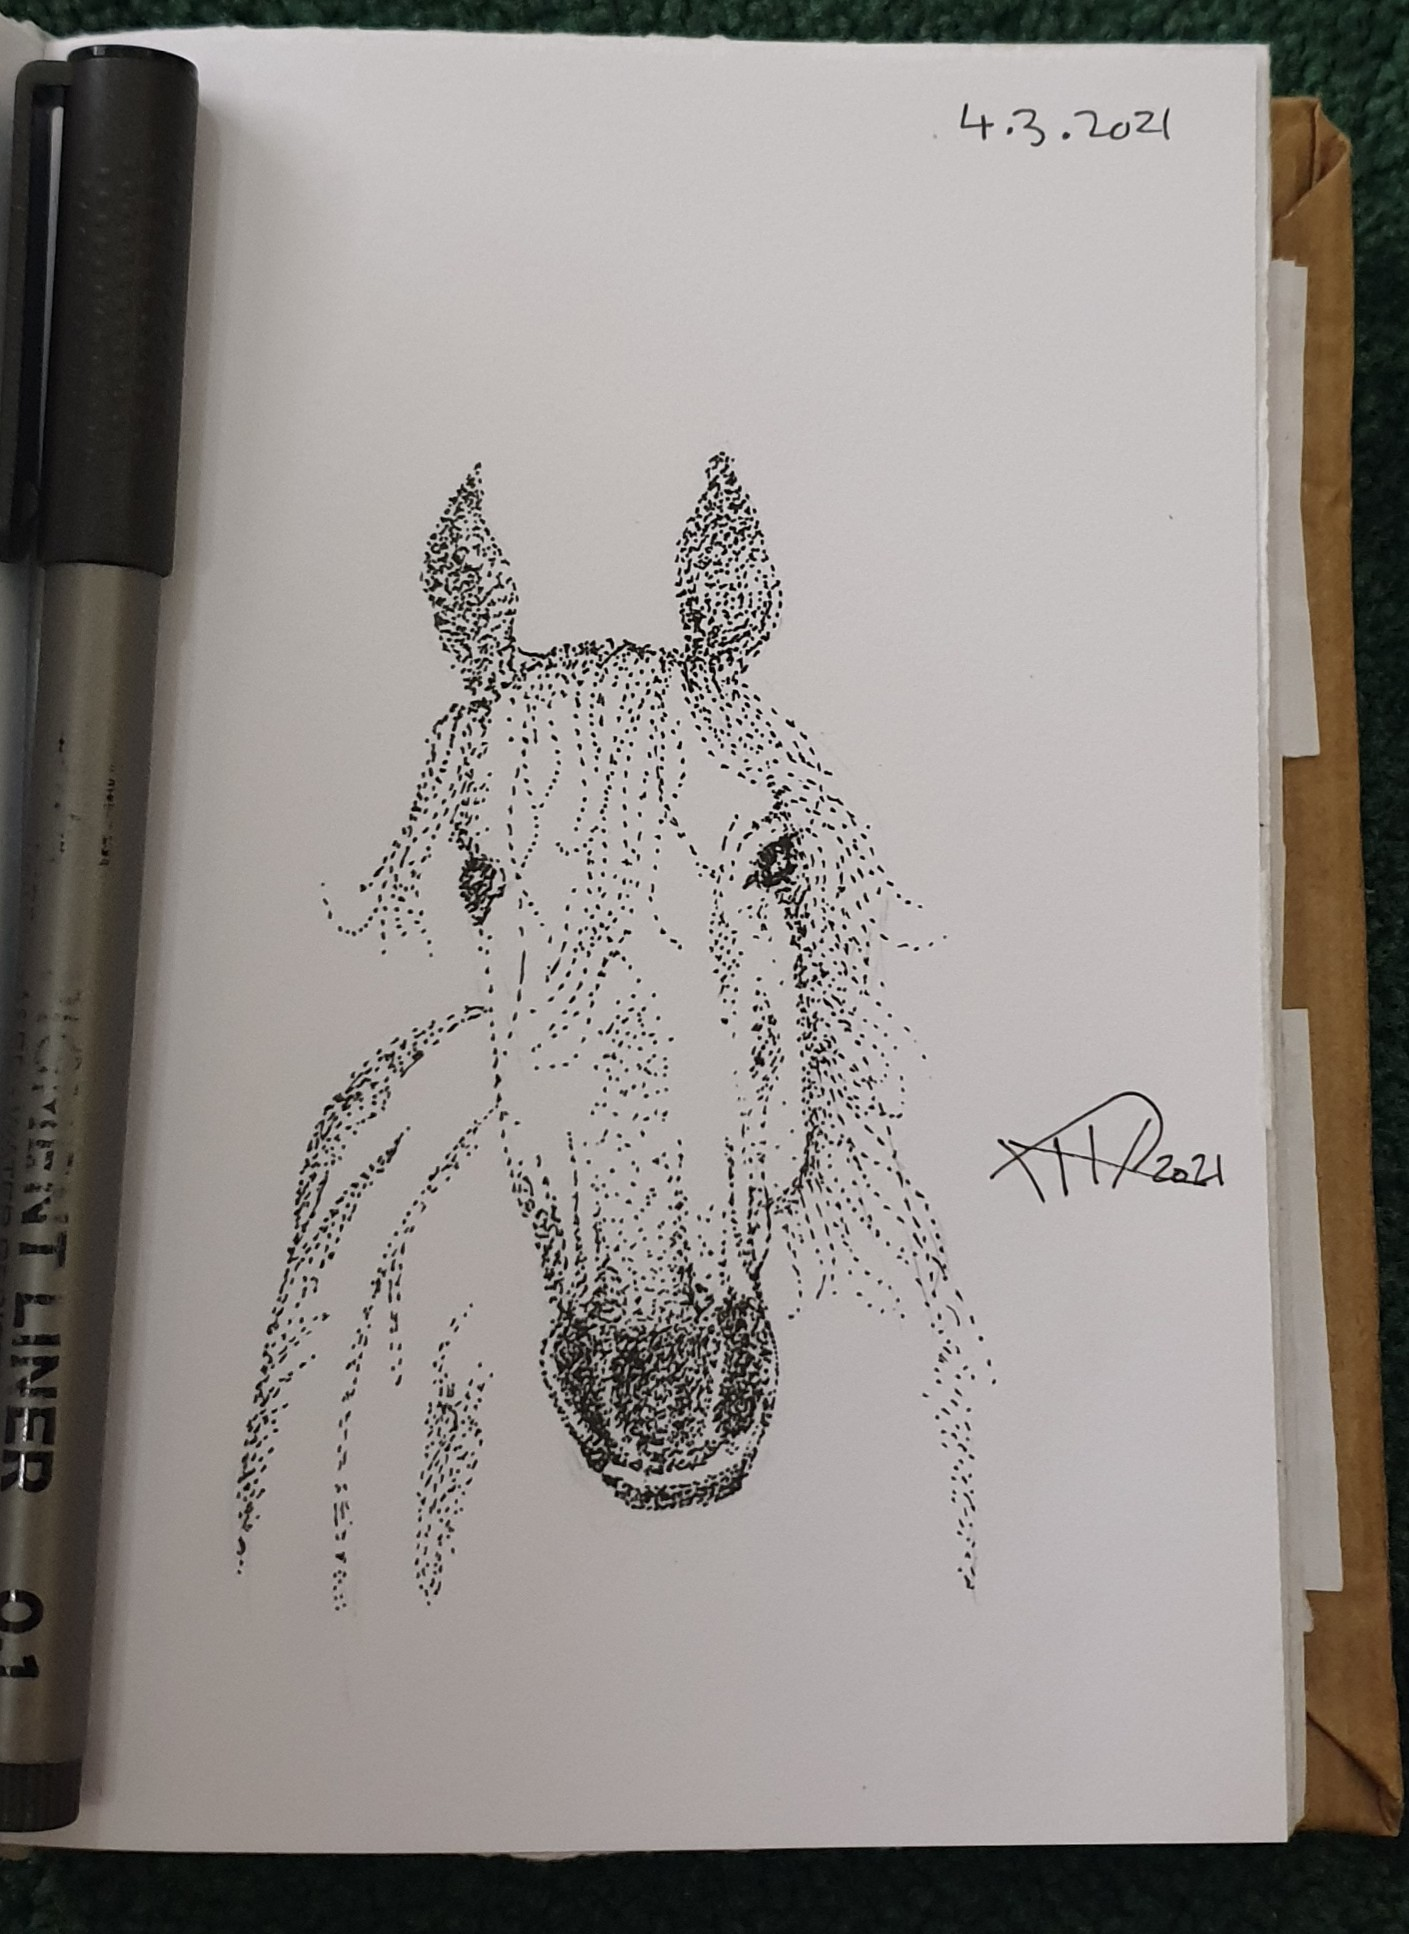 Ali radwani drawing sketch challenge 1hour1sketch horse pen pencil